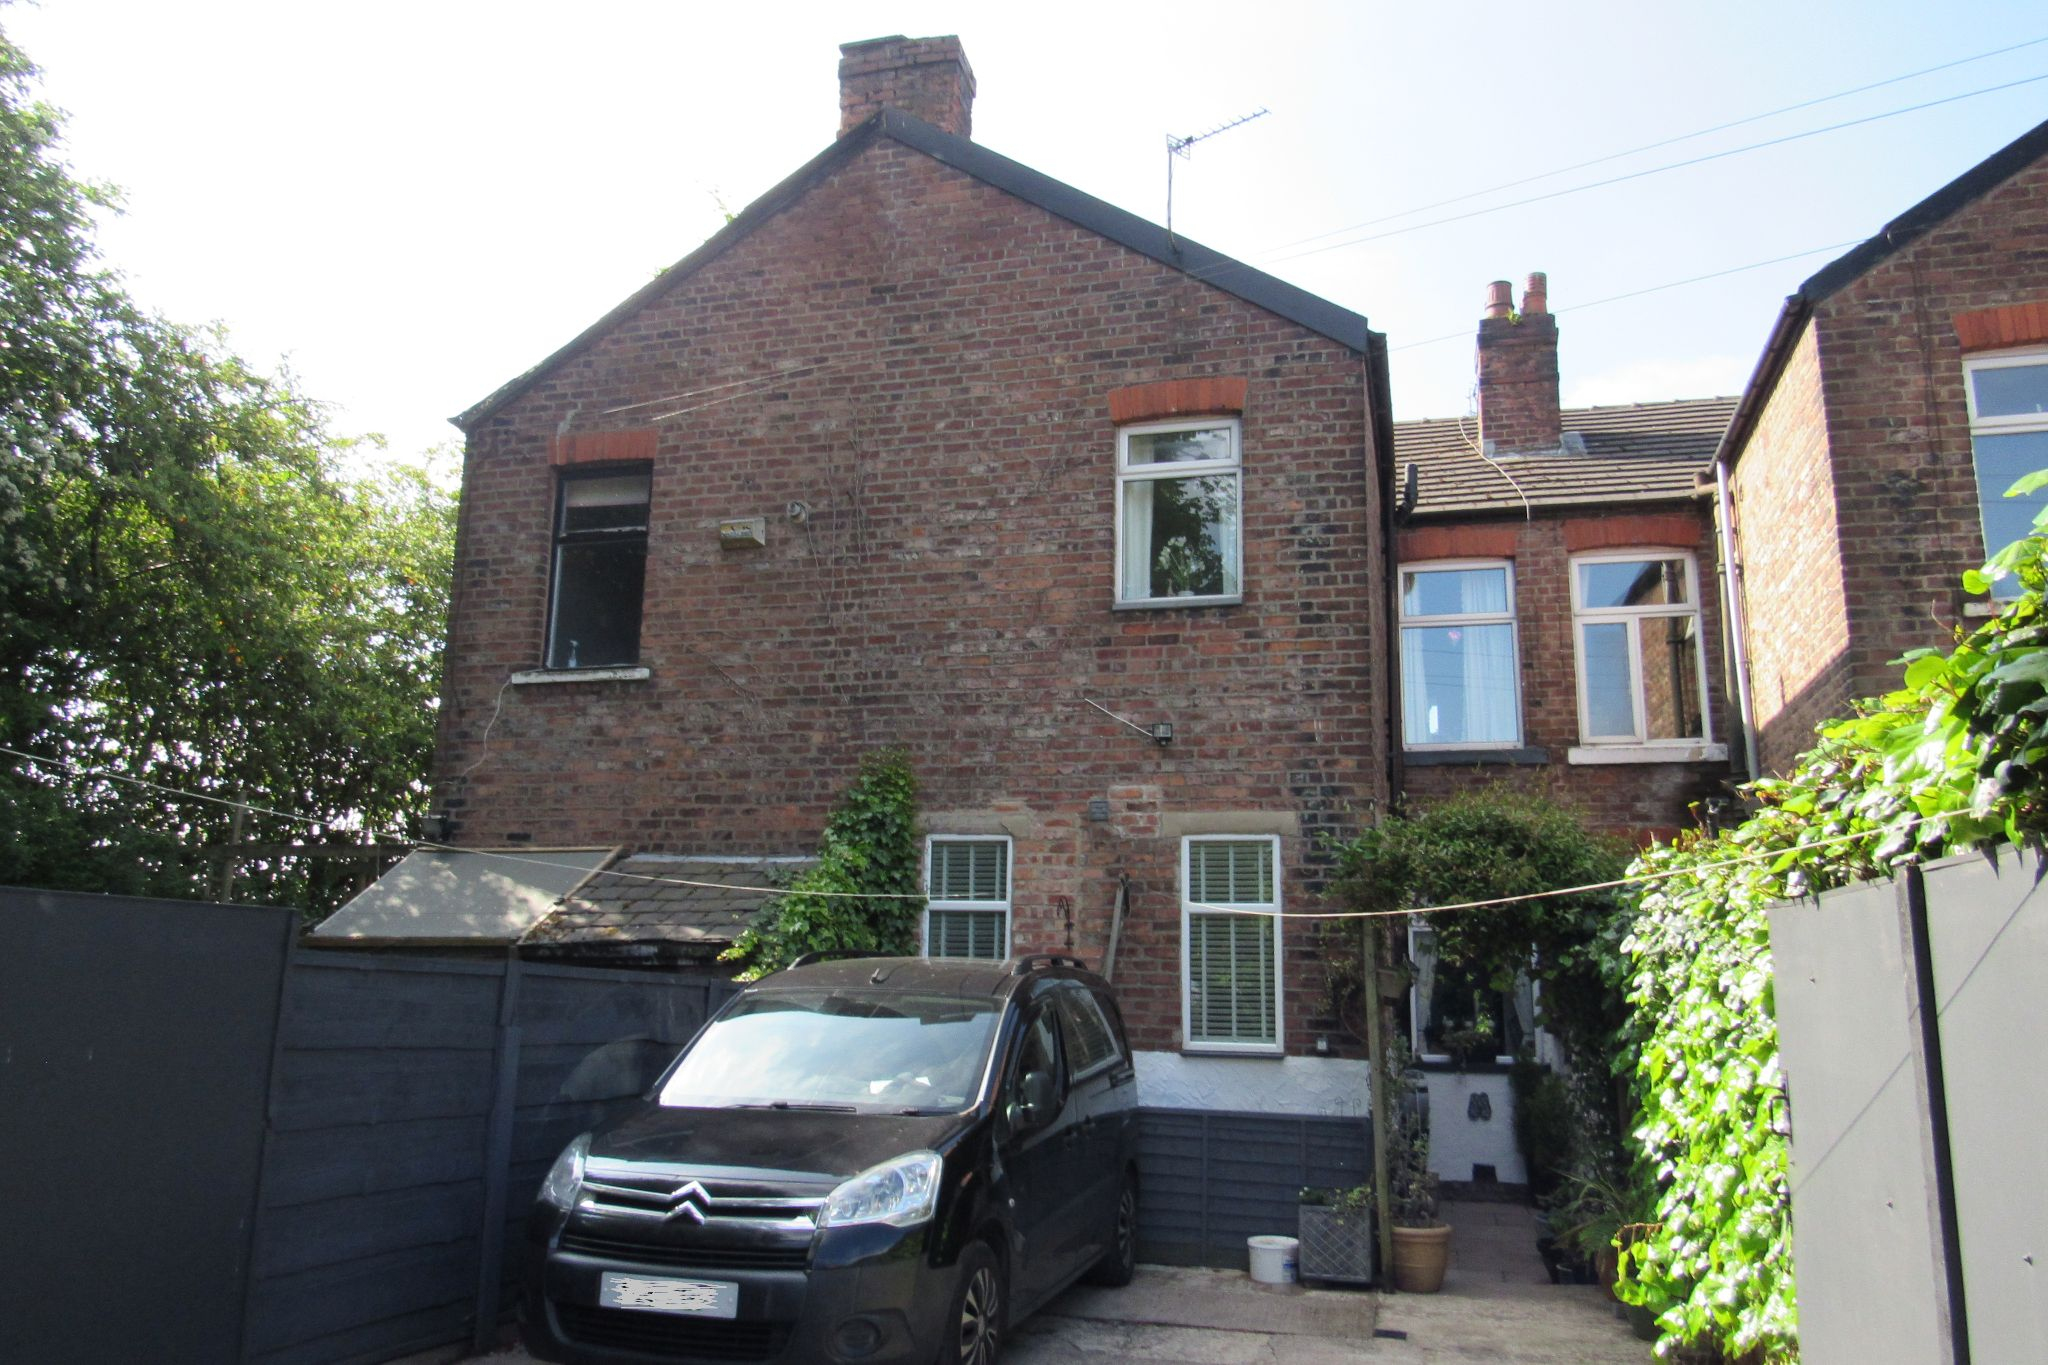 3 bedroom mid terraced house SSTC in Stockport - Photograph 28.